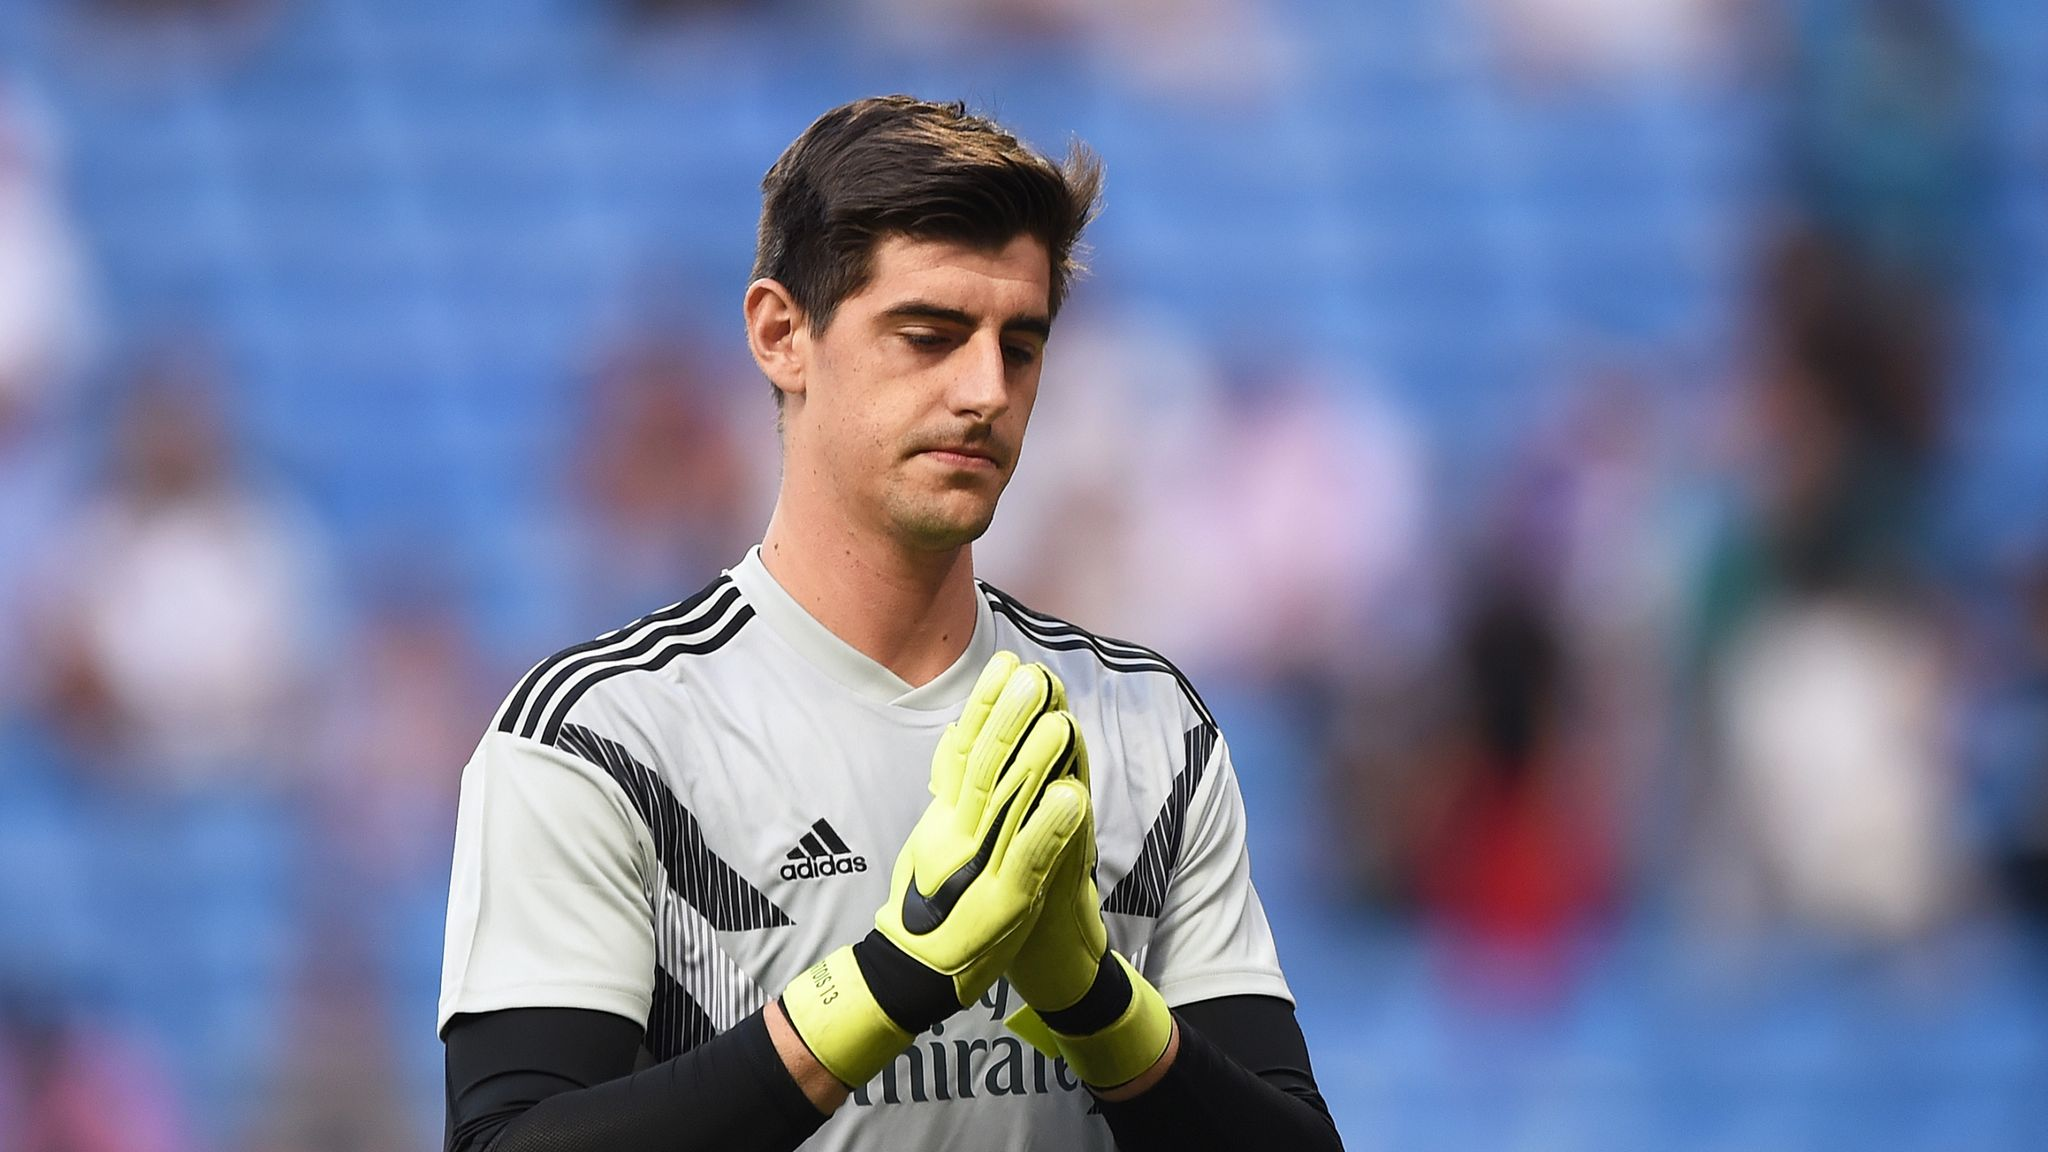 bb807f2ecb4 Thibaut Courtois feels  sad  after Chelsea fans  anger at Real Madrid move